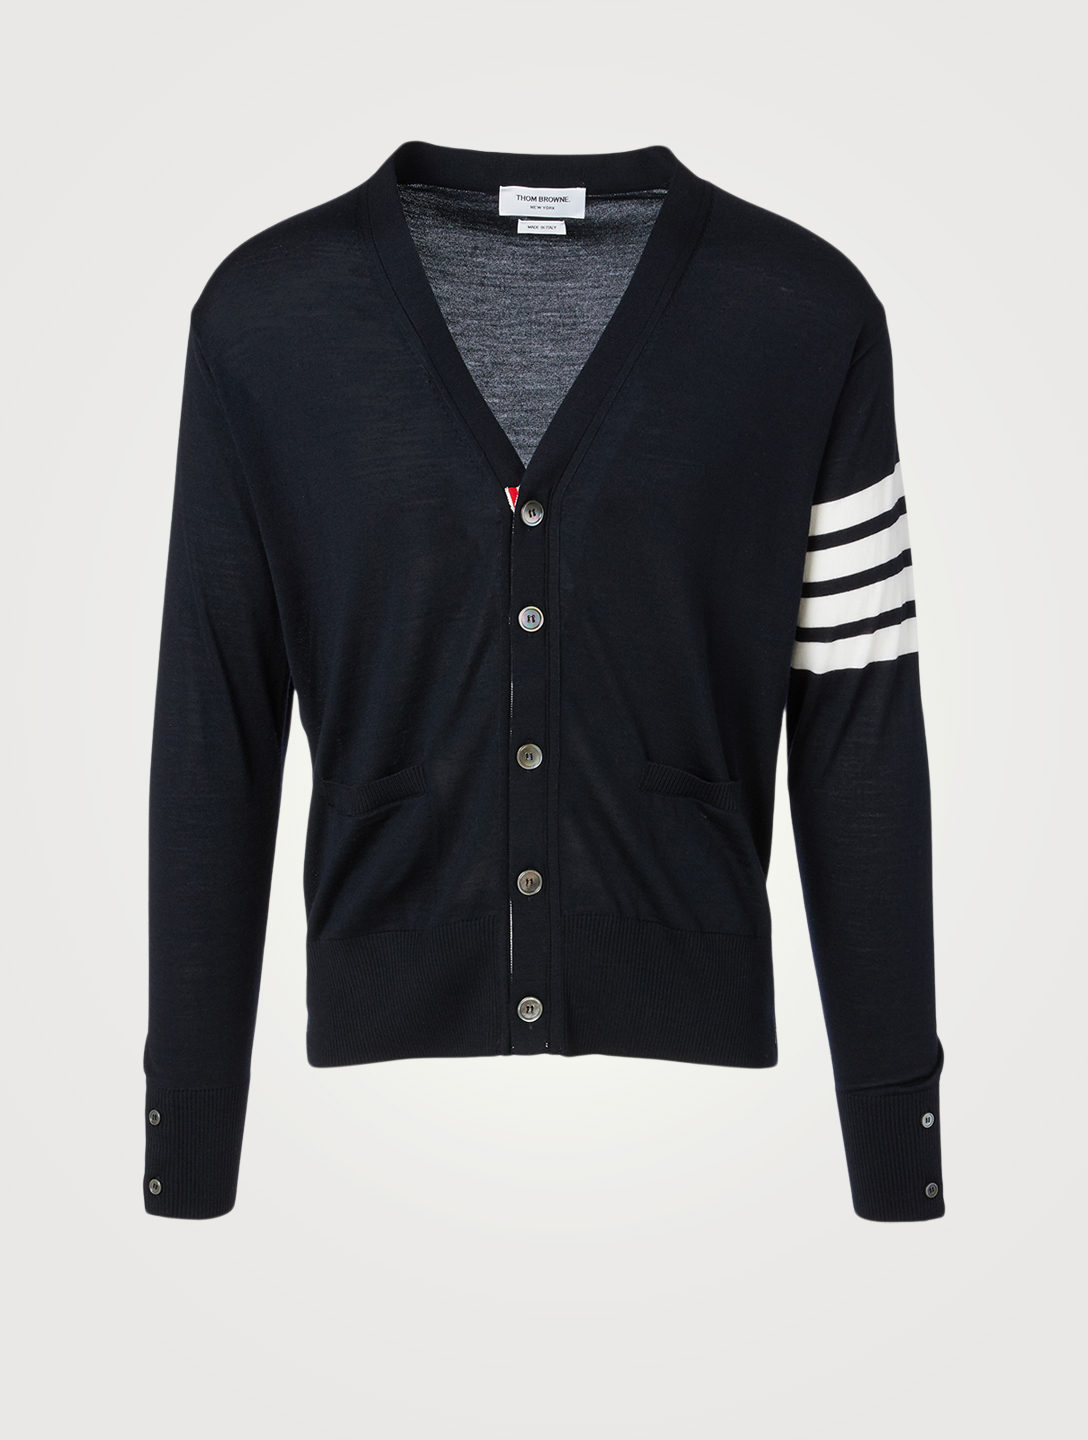 THOM BROWNE Wool Cardigan With Four-Bar Stripe Men's Blue